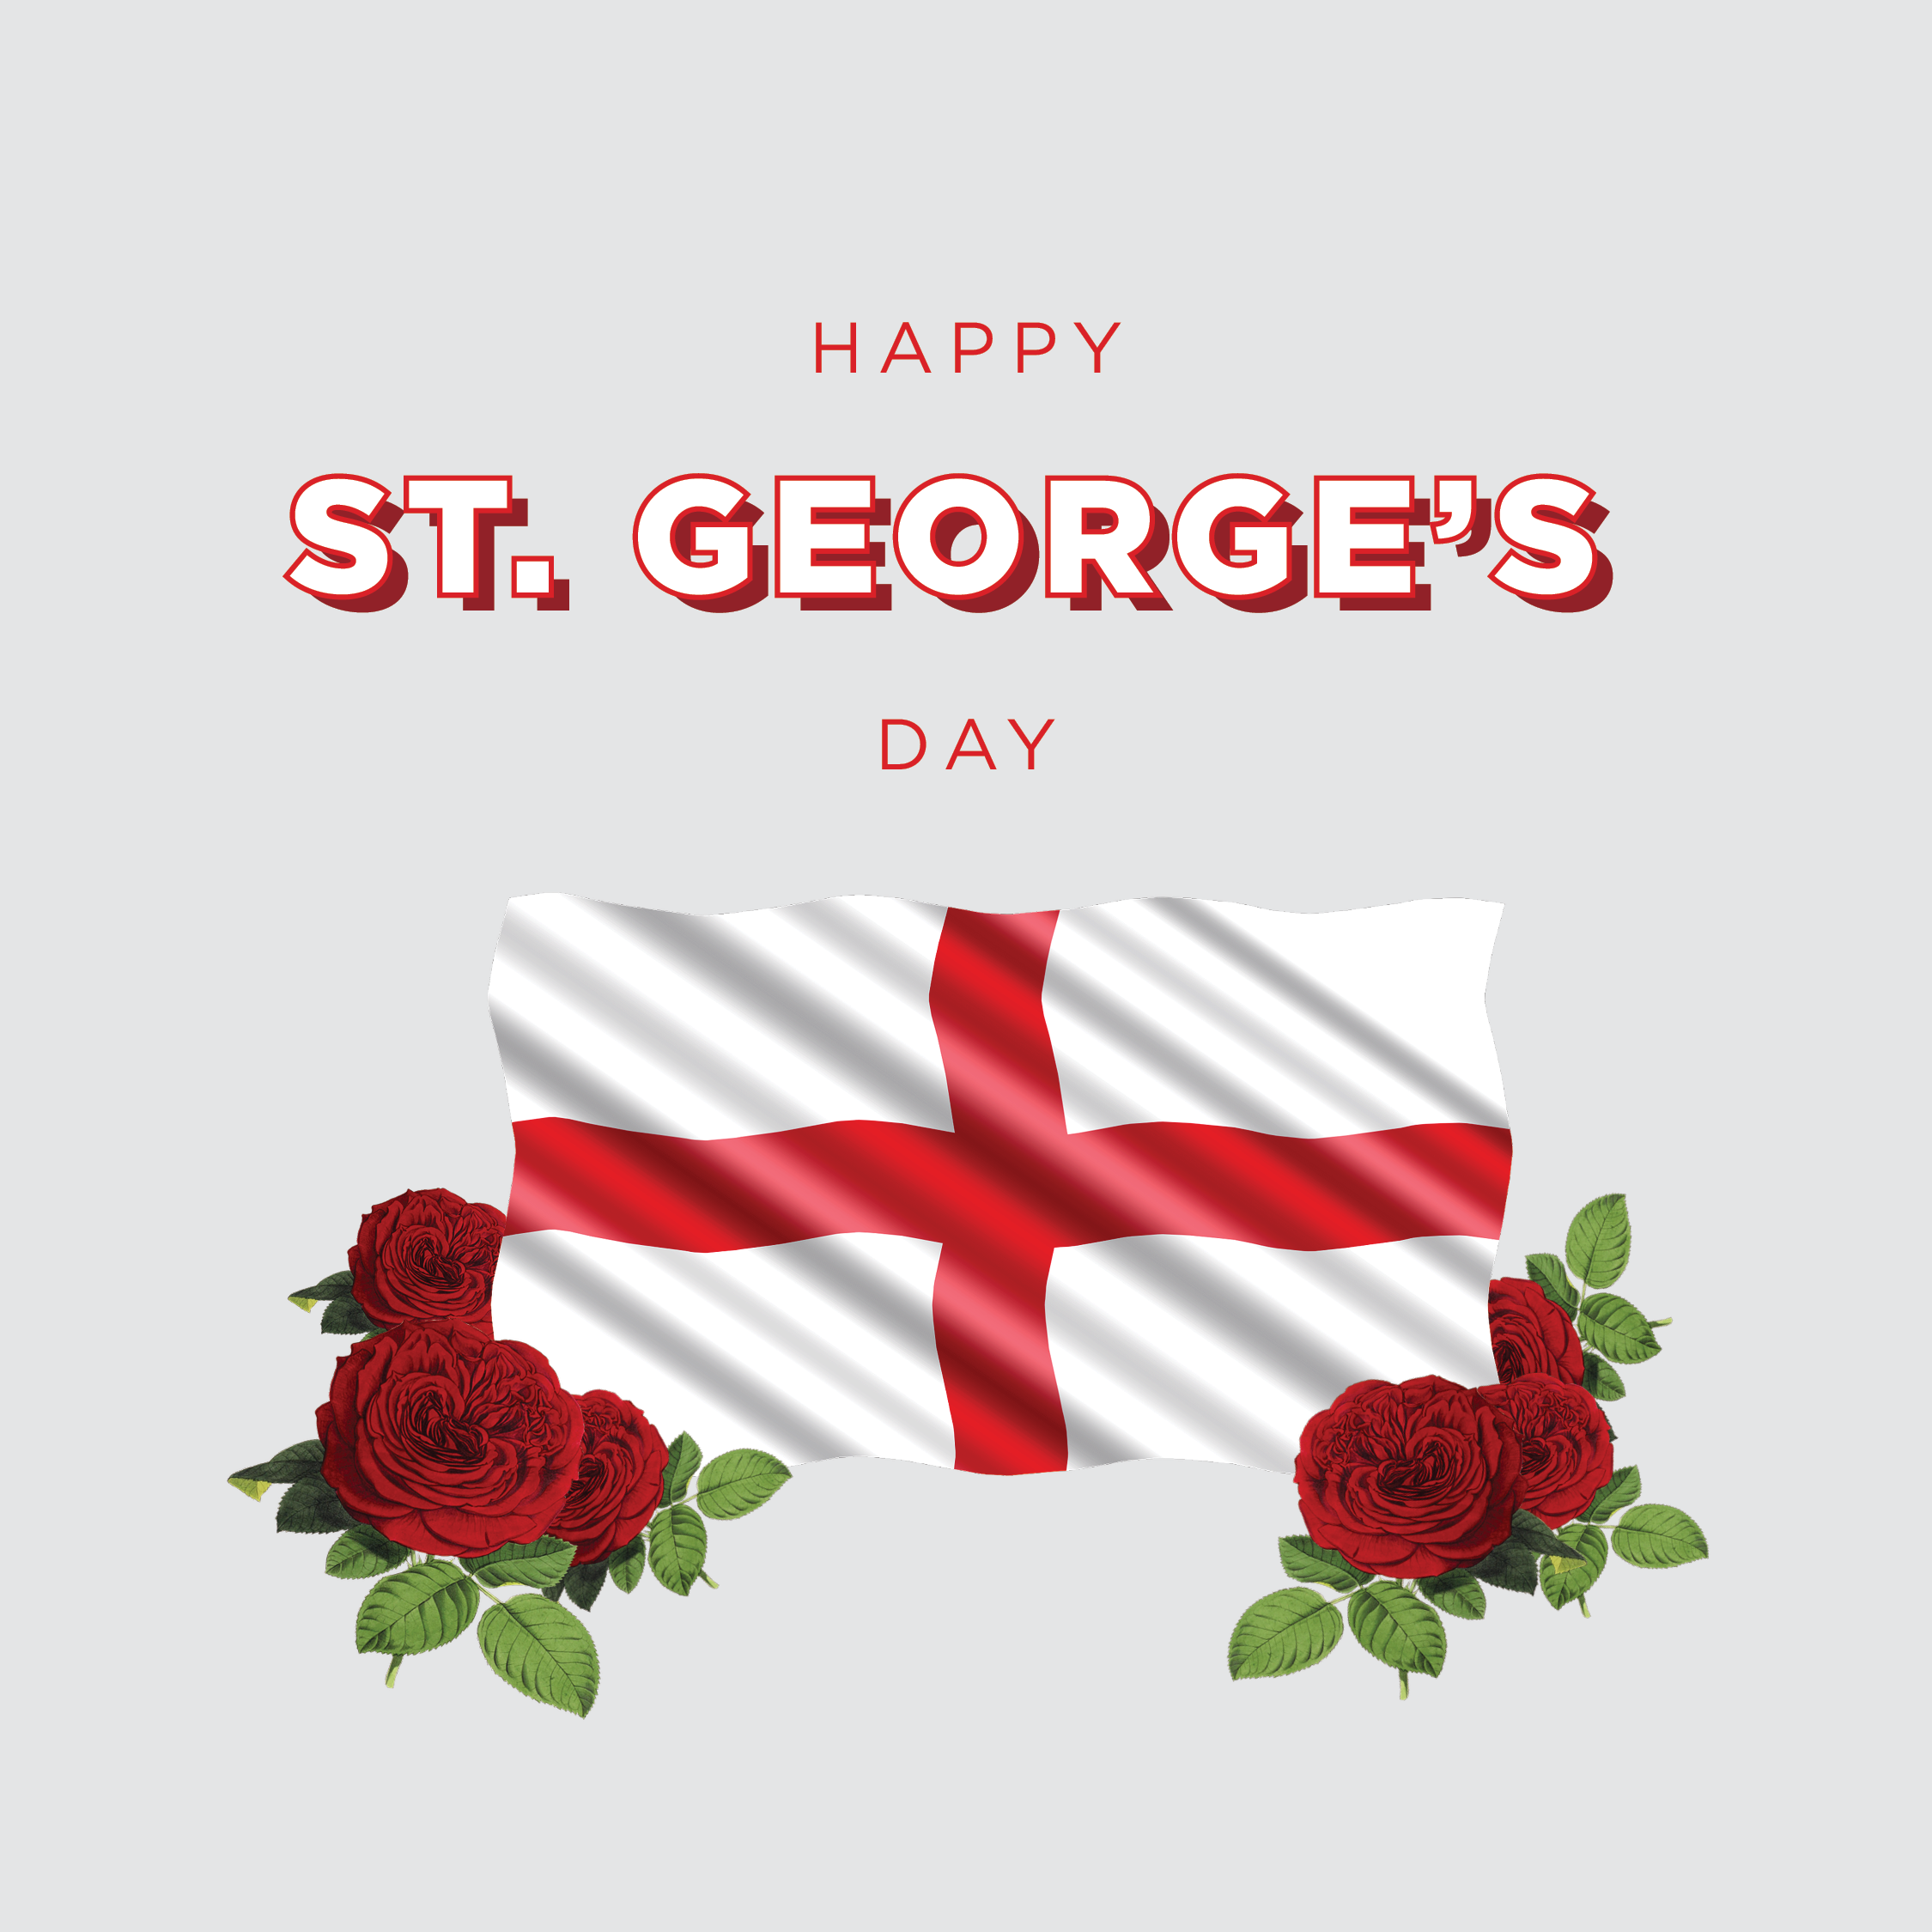 NationalDays_St George's Day 2020-1